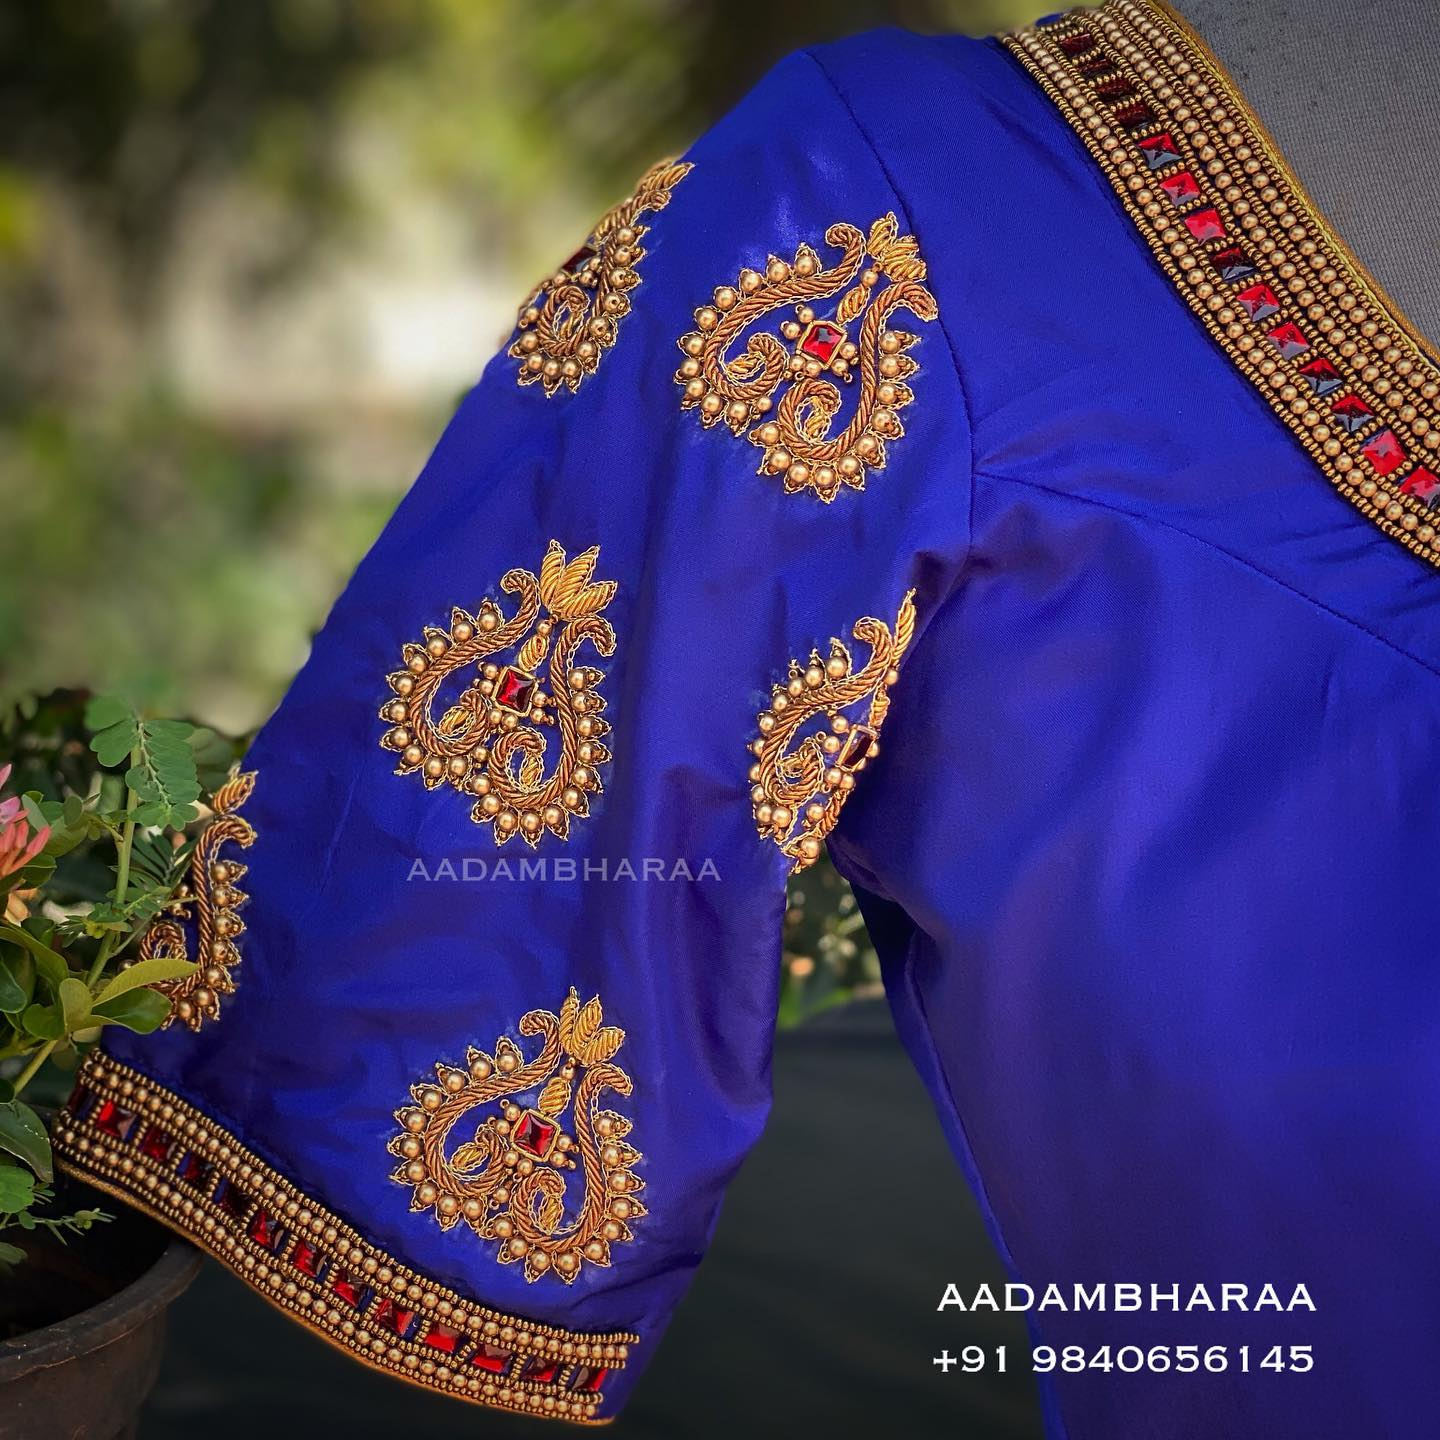 """Elegance is the highest form of sophistication "" and here is one such blouse of Aadambharaa that exudes grace and aristocracy in its carefully hand embroidered peacock motifs on the sleeves.